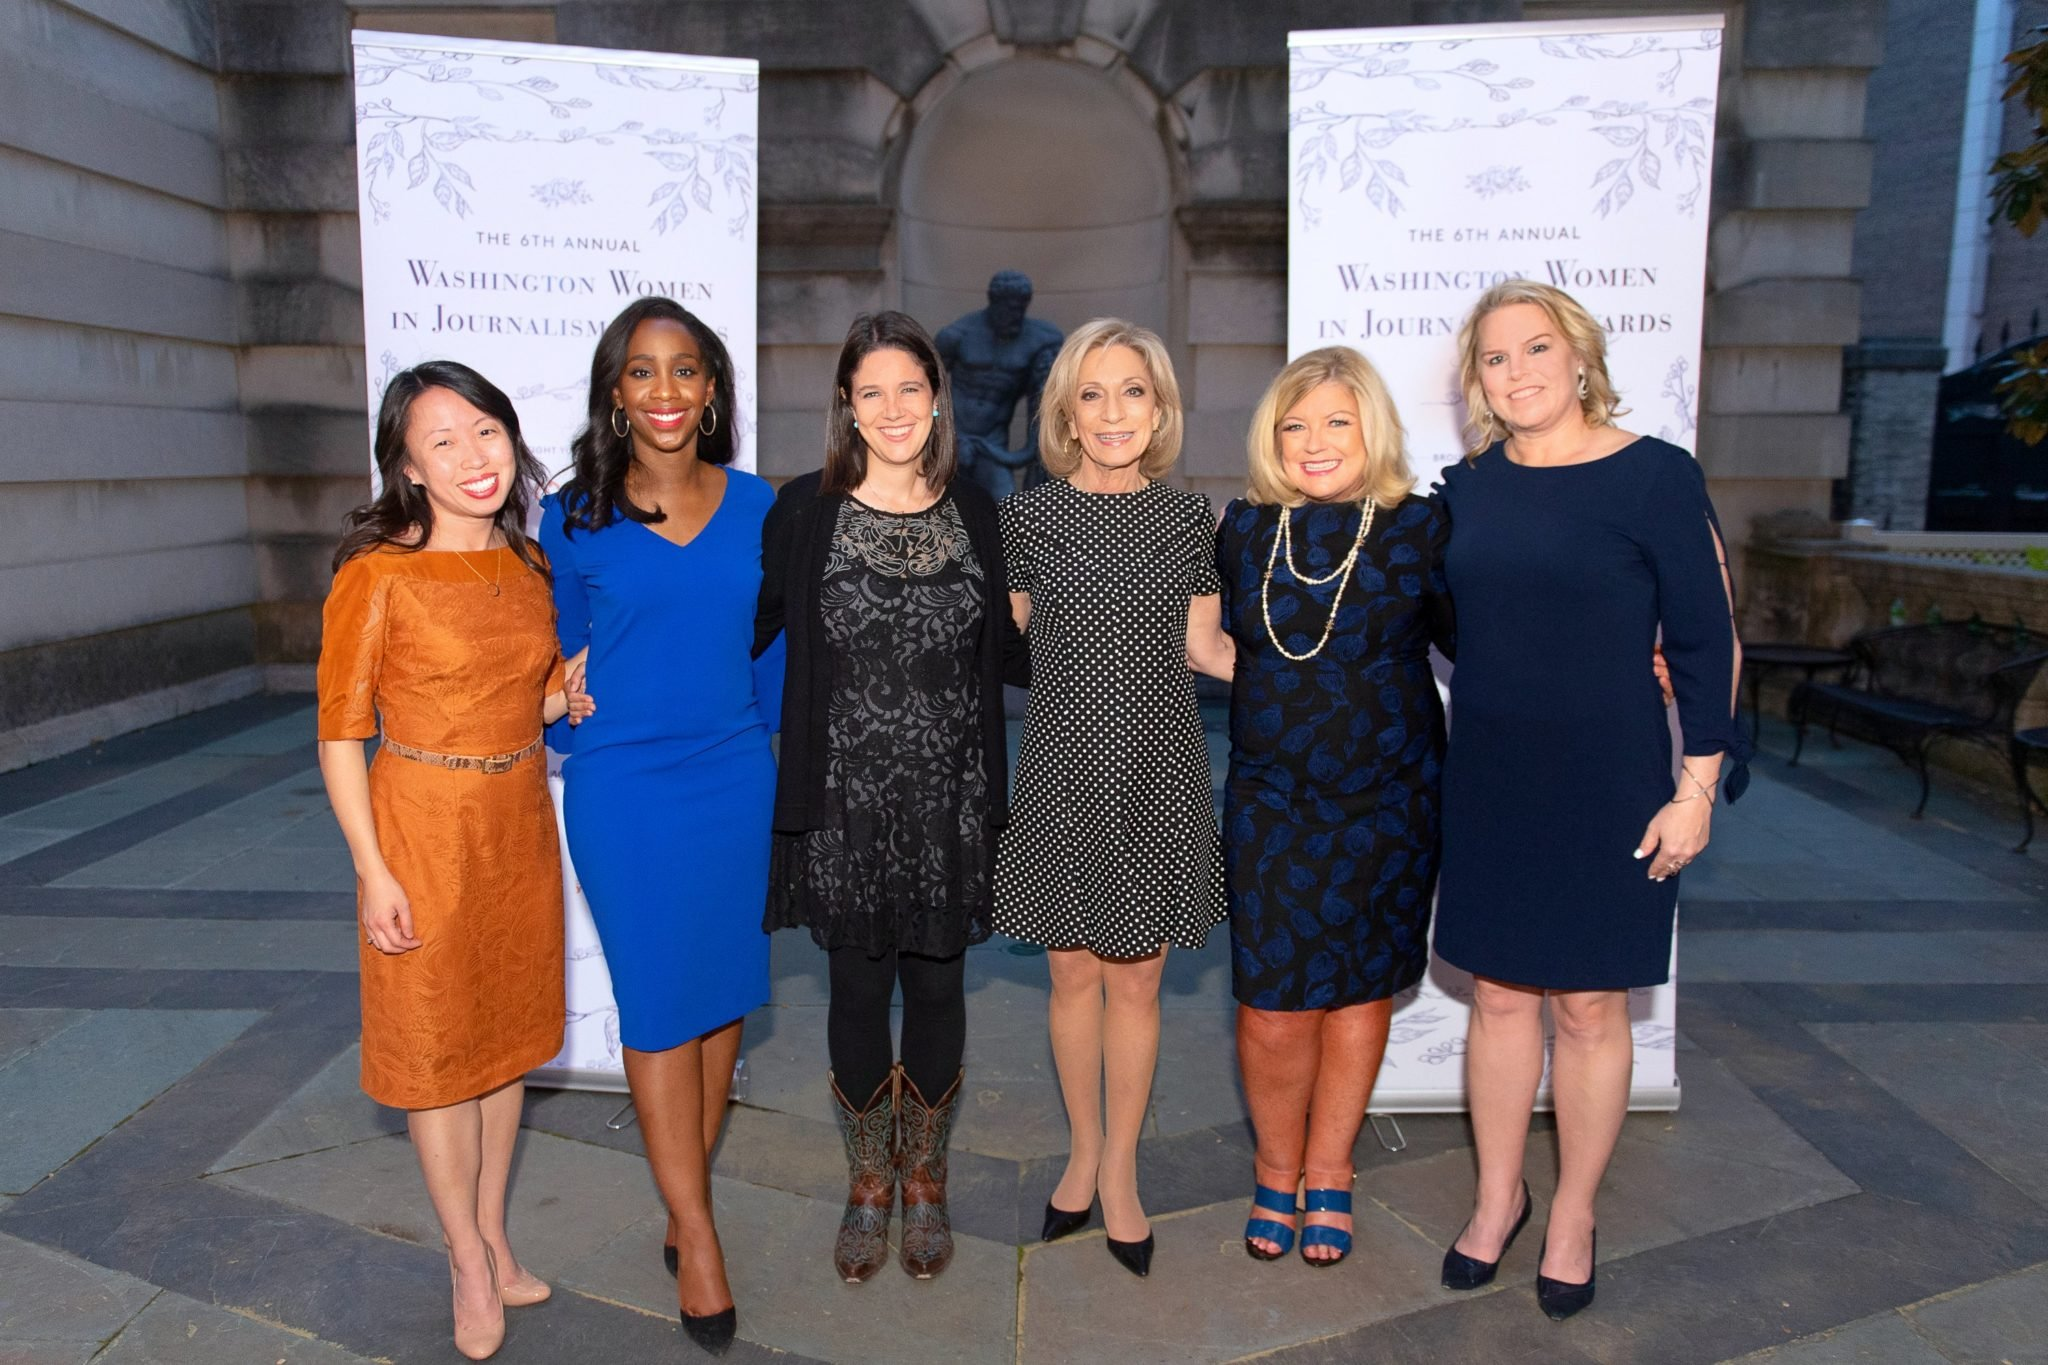 Photos From the 6th Annual Washington Women in Journalism Awards